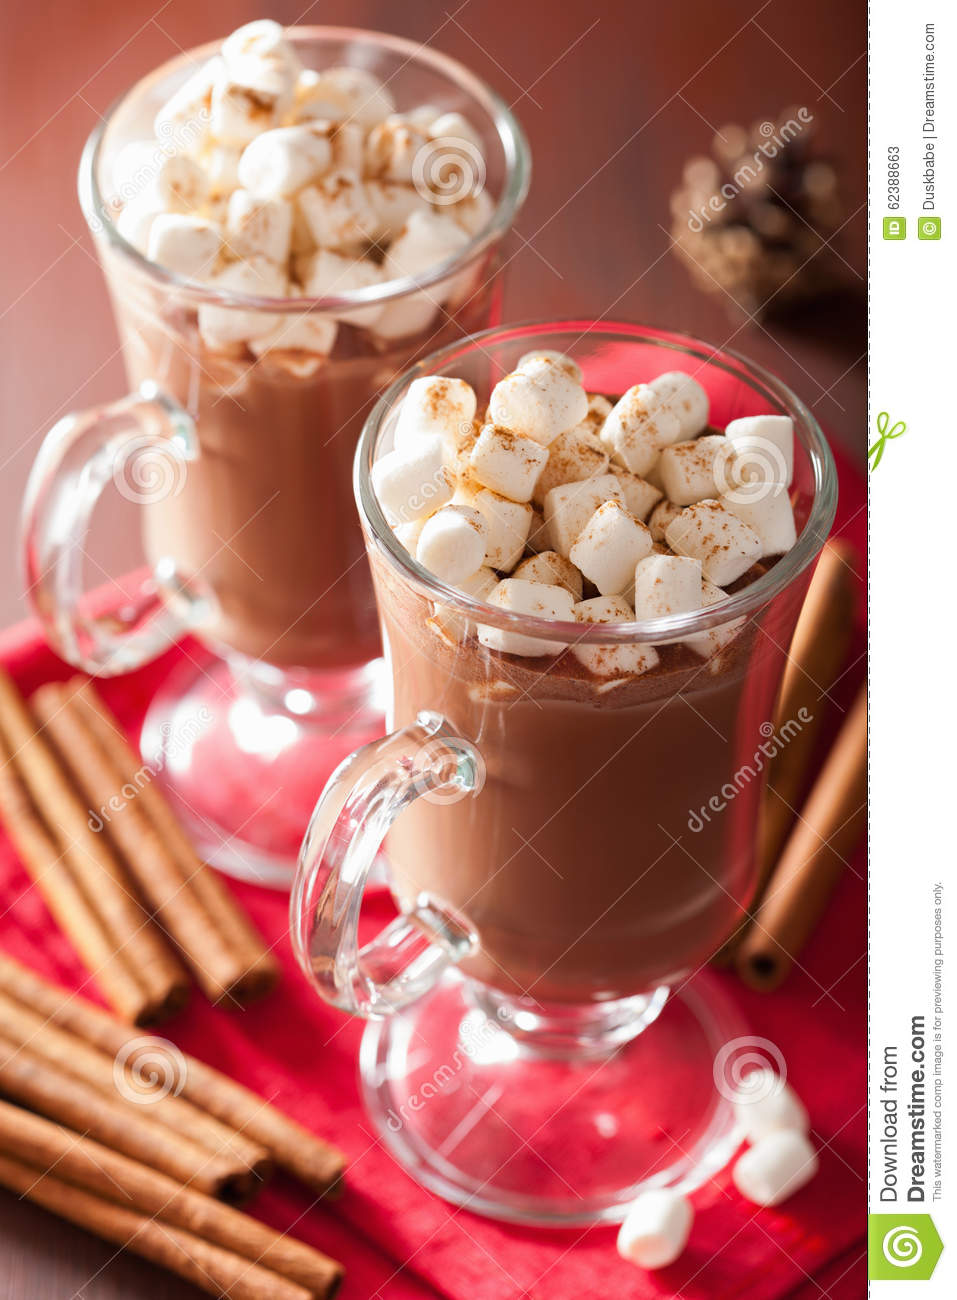 chocolat chaud avec la mini boisson d 39 hiver de cannelle de guimauves photo stock image 62388663. Black Bedroom Furniture Sets. Home Design Ideas